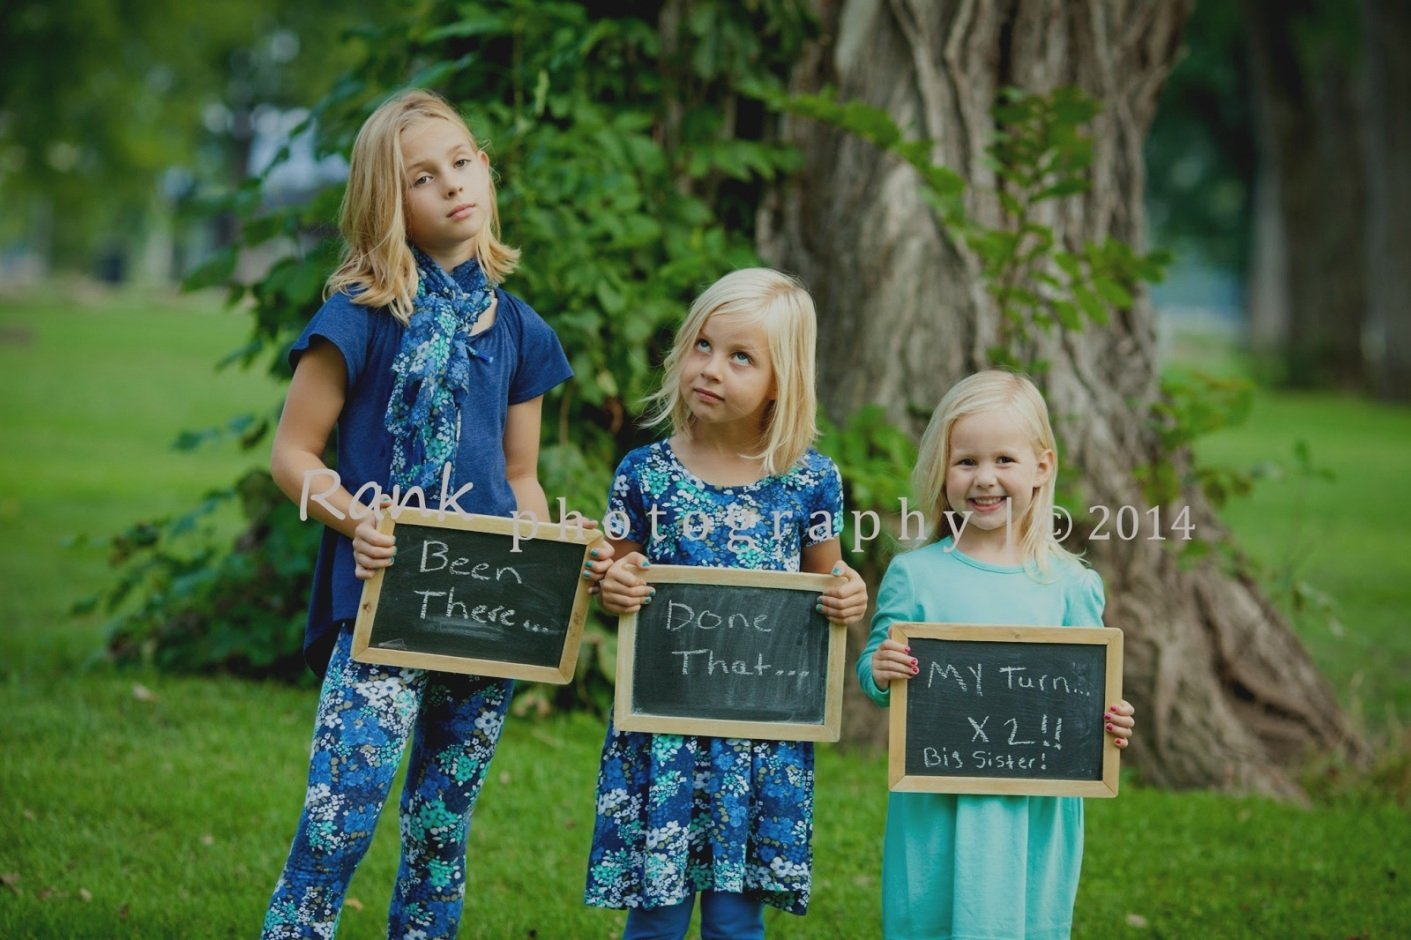 10 Amazing Ideas To Announce Pregnancy To Family unique ideas to announce pregnancy family photo announcement